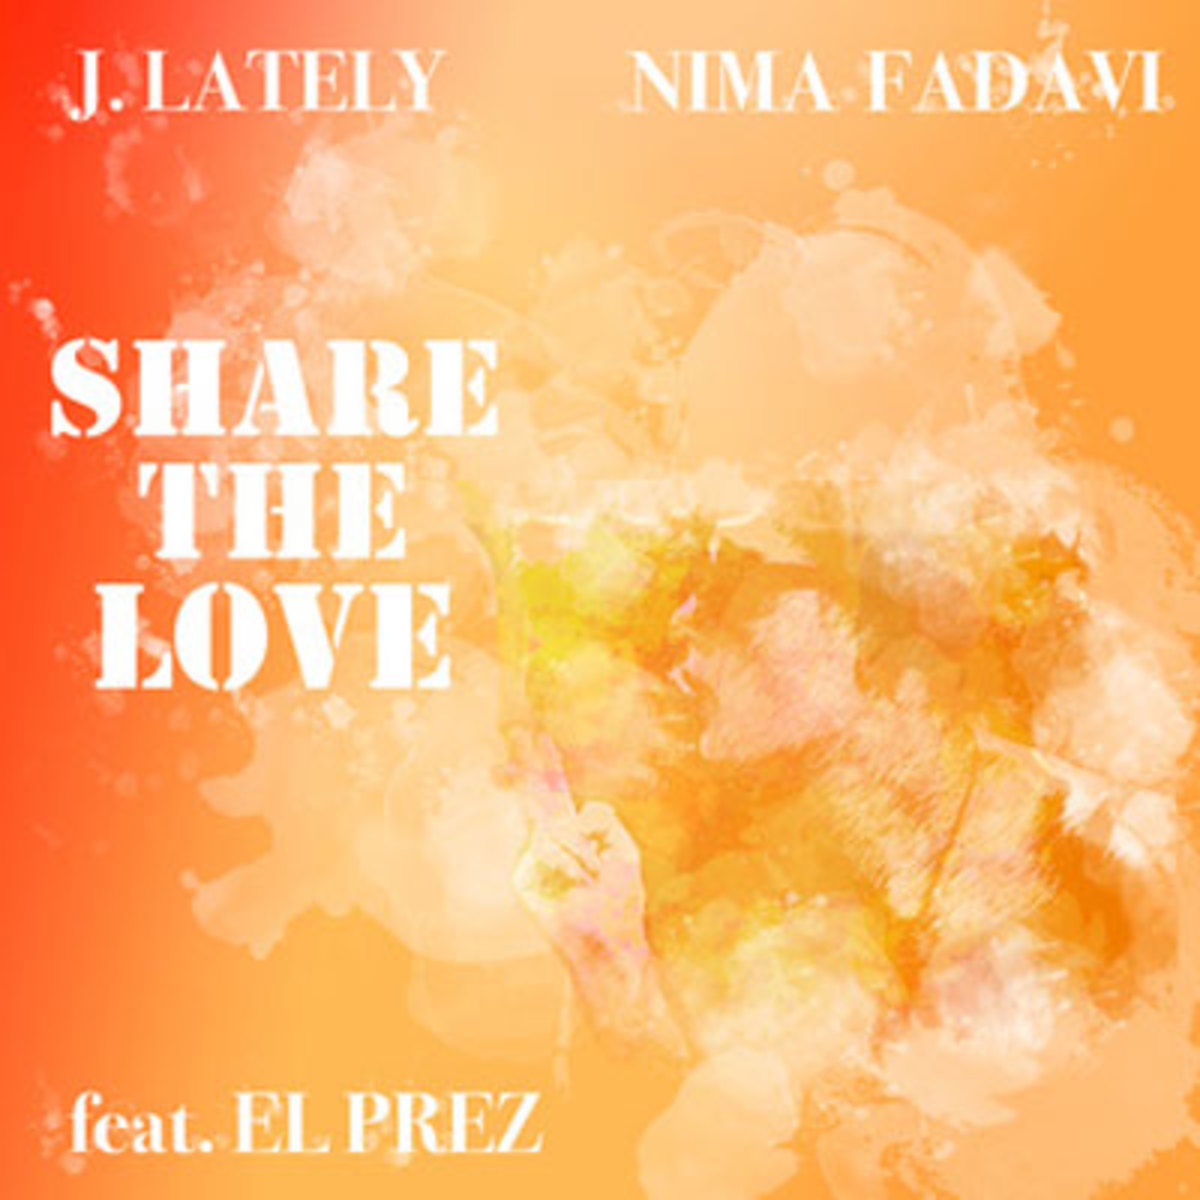 jlately-sharethelove.jpg